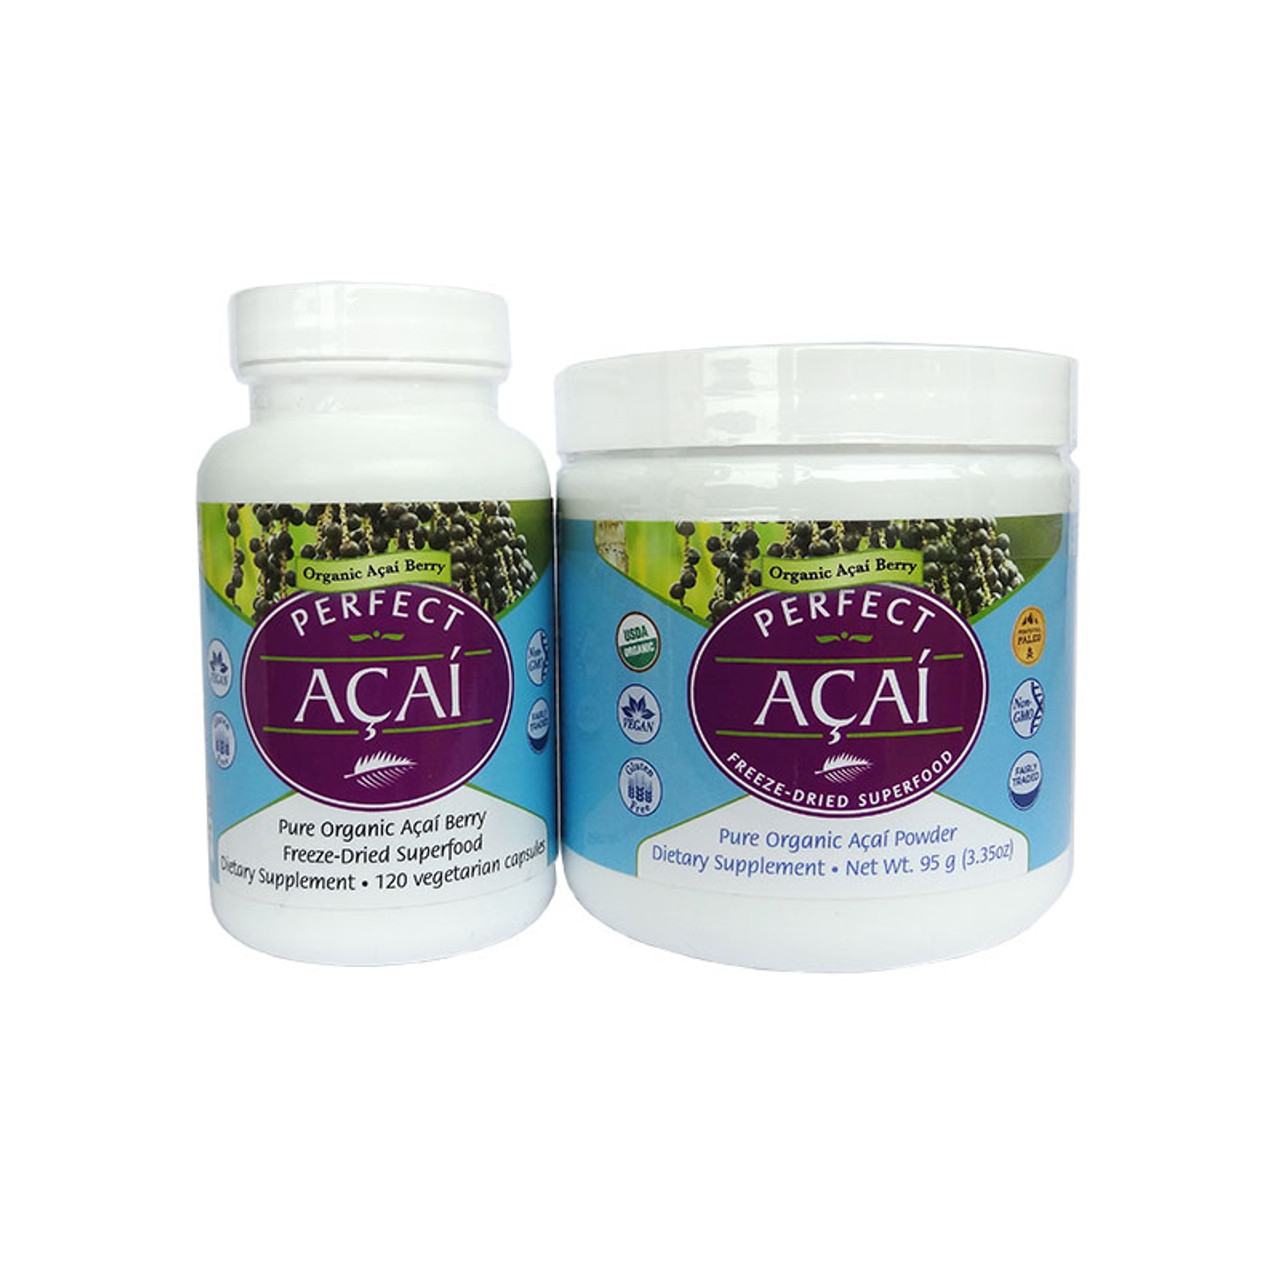 Front view of  Acai capsules and powder from Perfect Supplements.